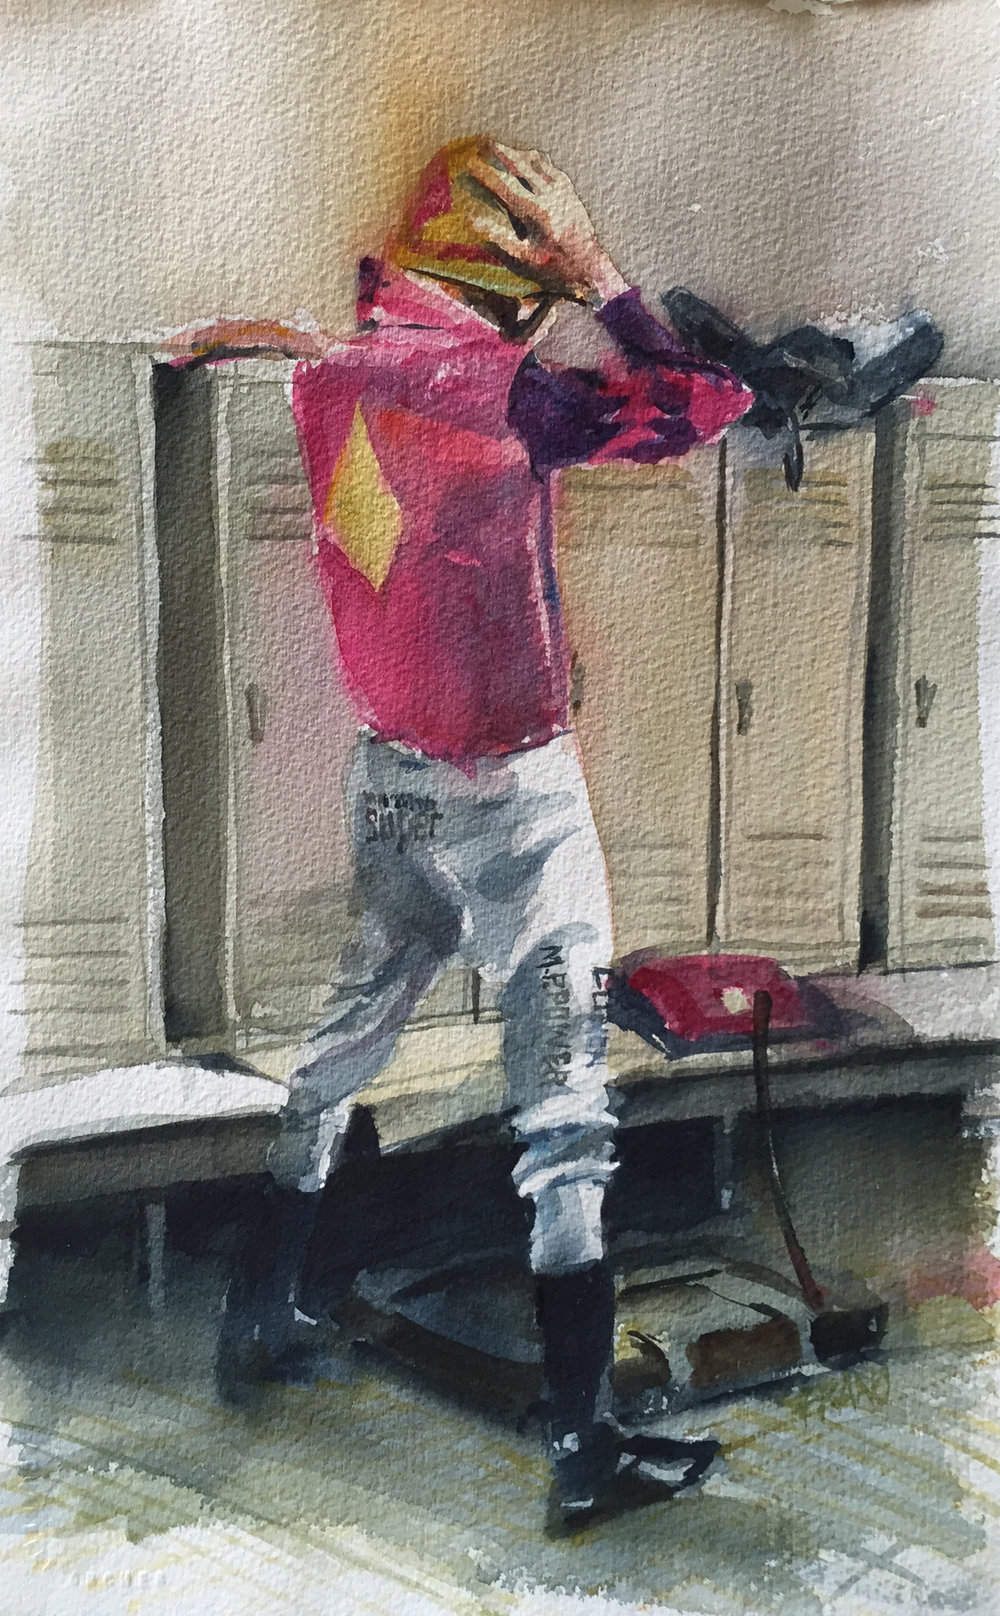 Jockey-Standing-Water-Colour-Painting-by-Frano.jpg